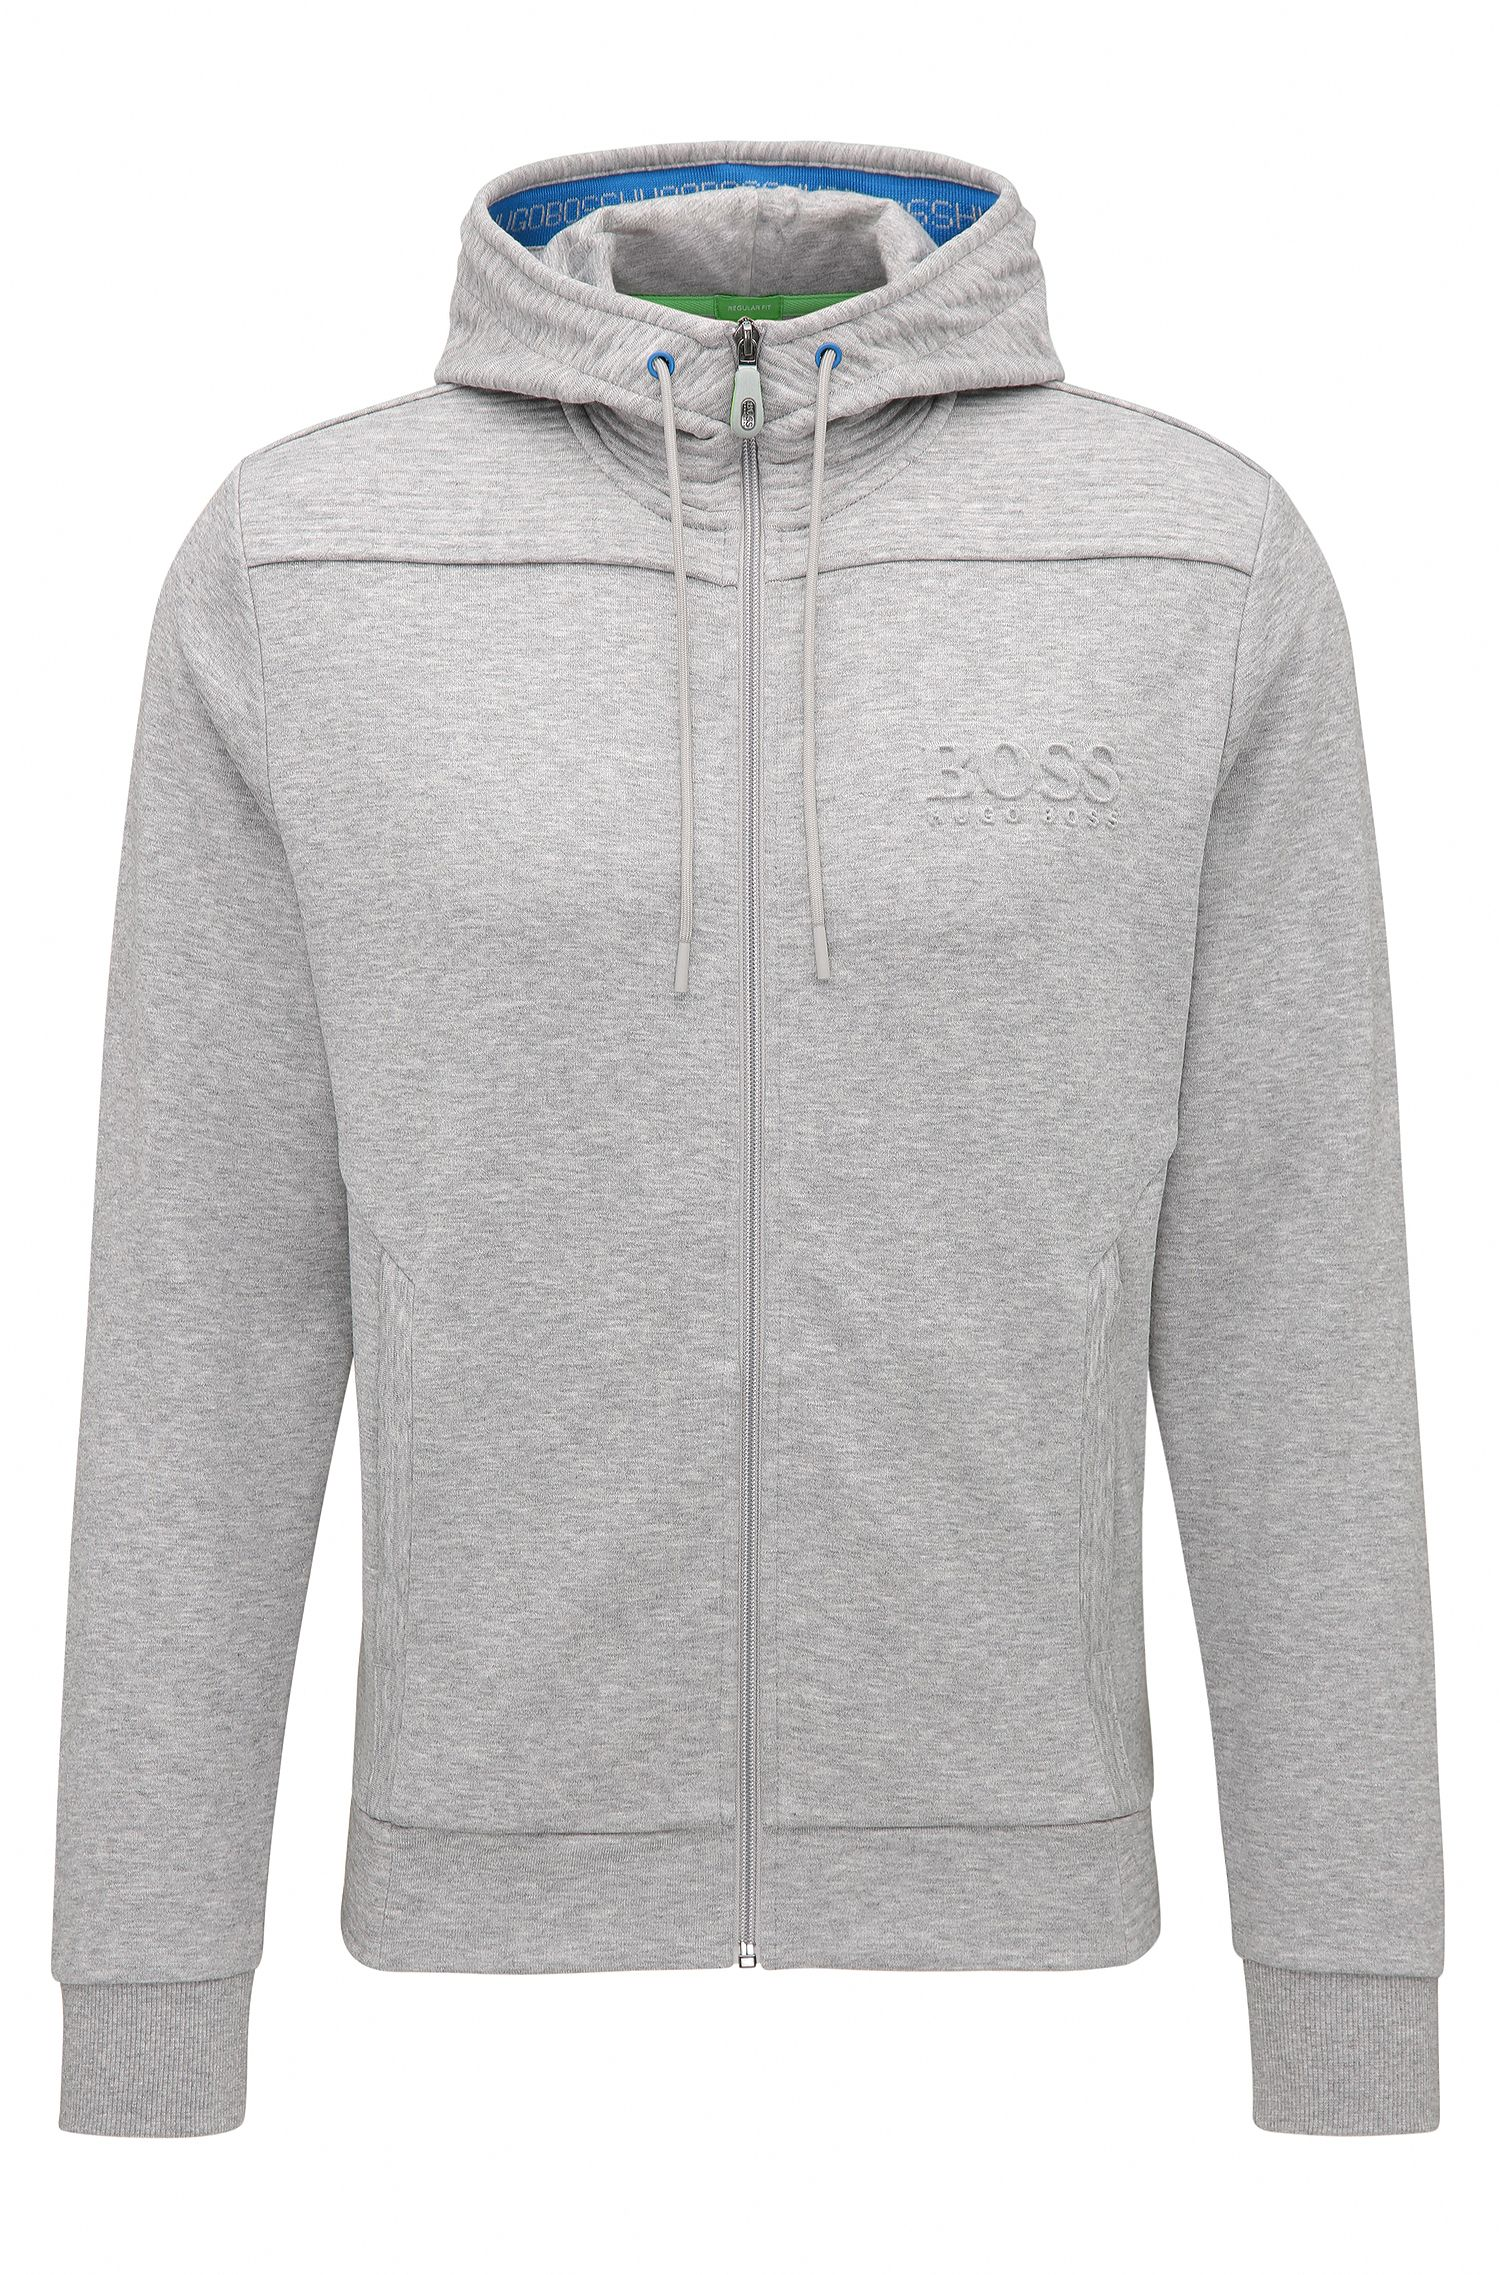 Regular-Fit Kapuzen-Sweatshirt aus Baumwoll-Mix